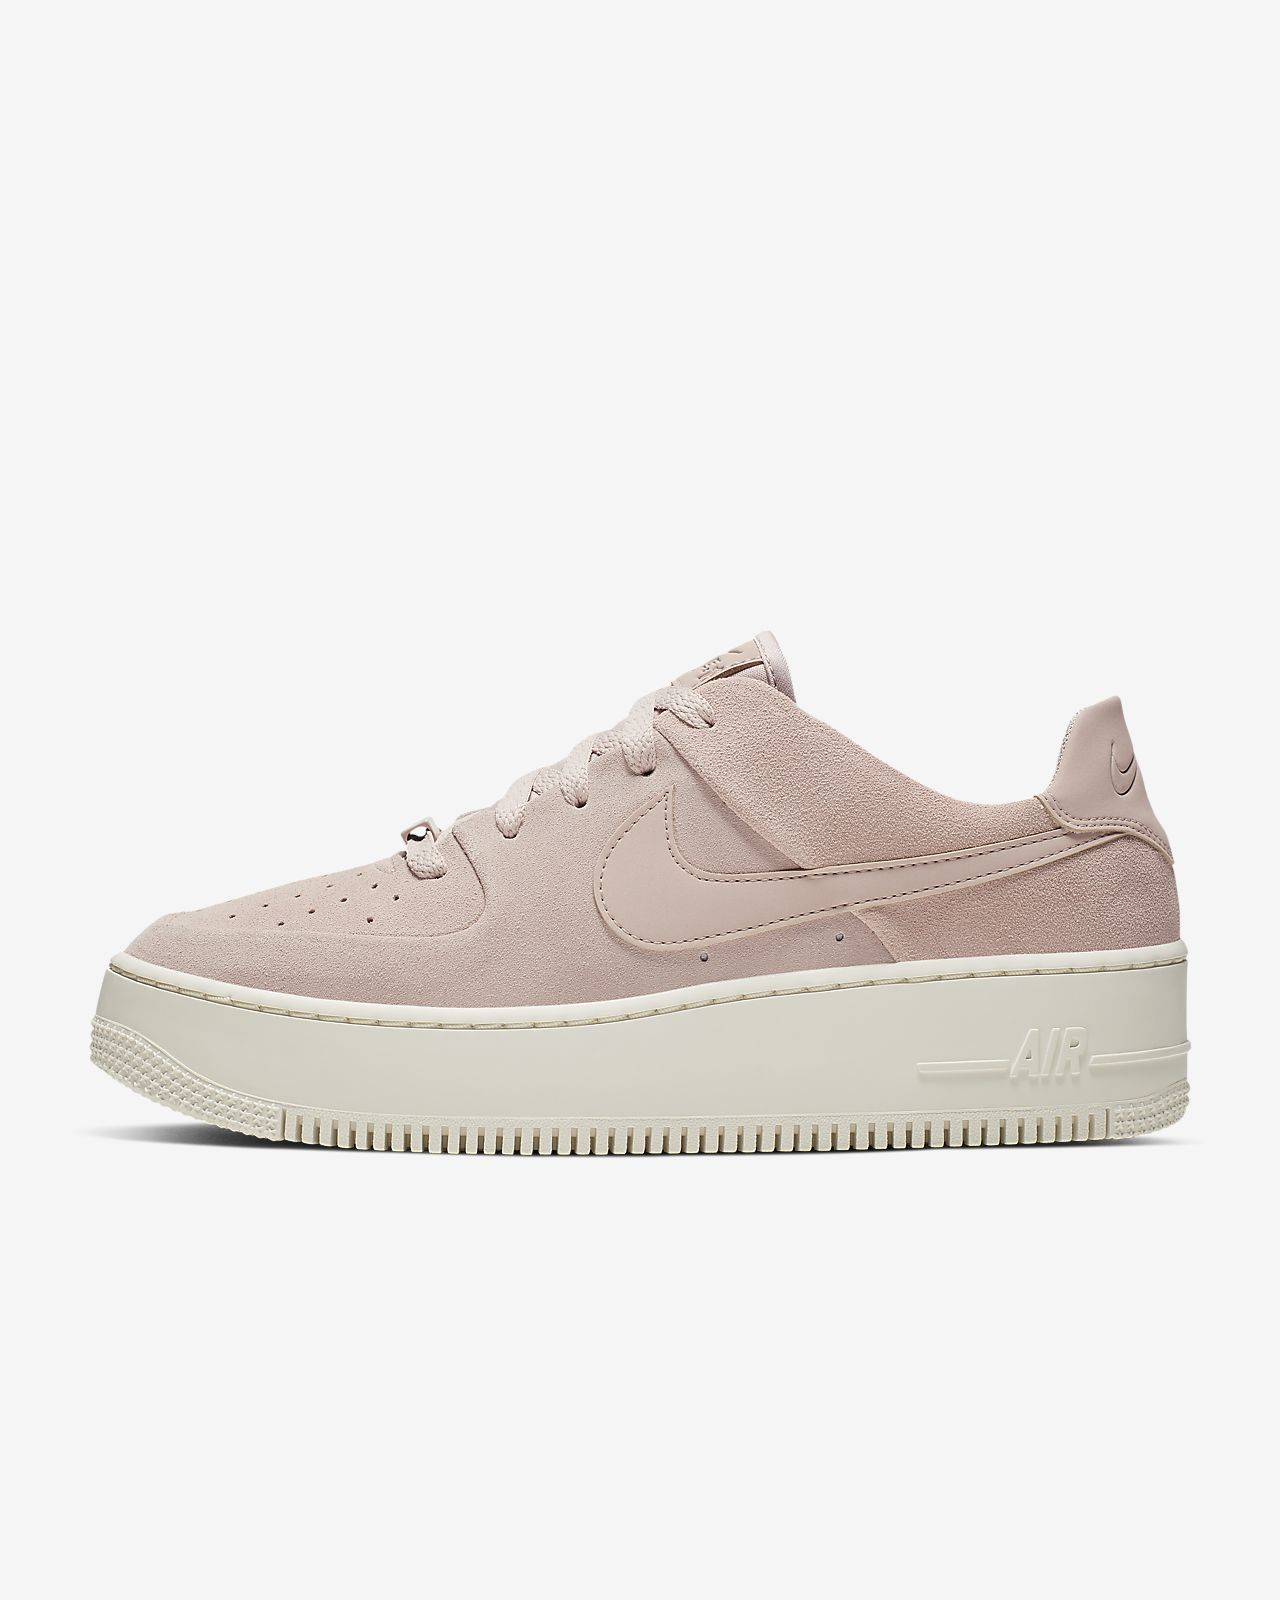 03d42b4eefdf2 Nike Air Force 1 Sage Low Women s Shoe. Nike.com NL